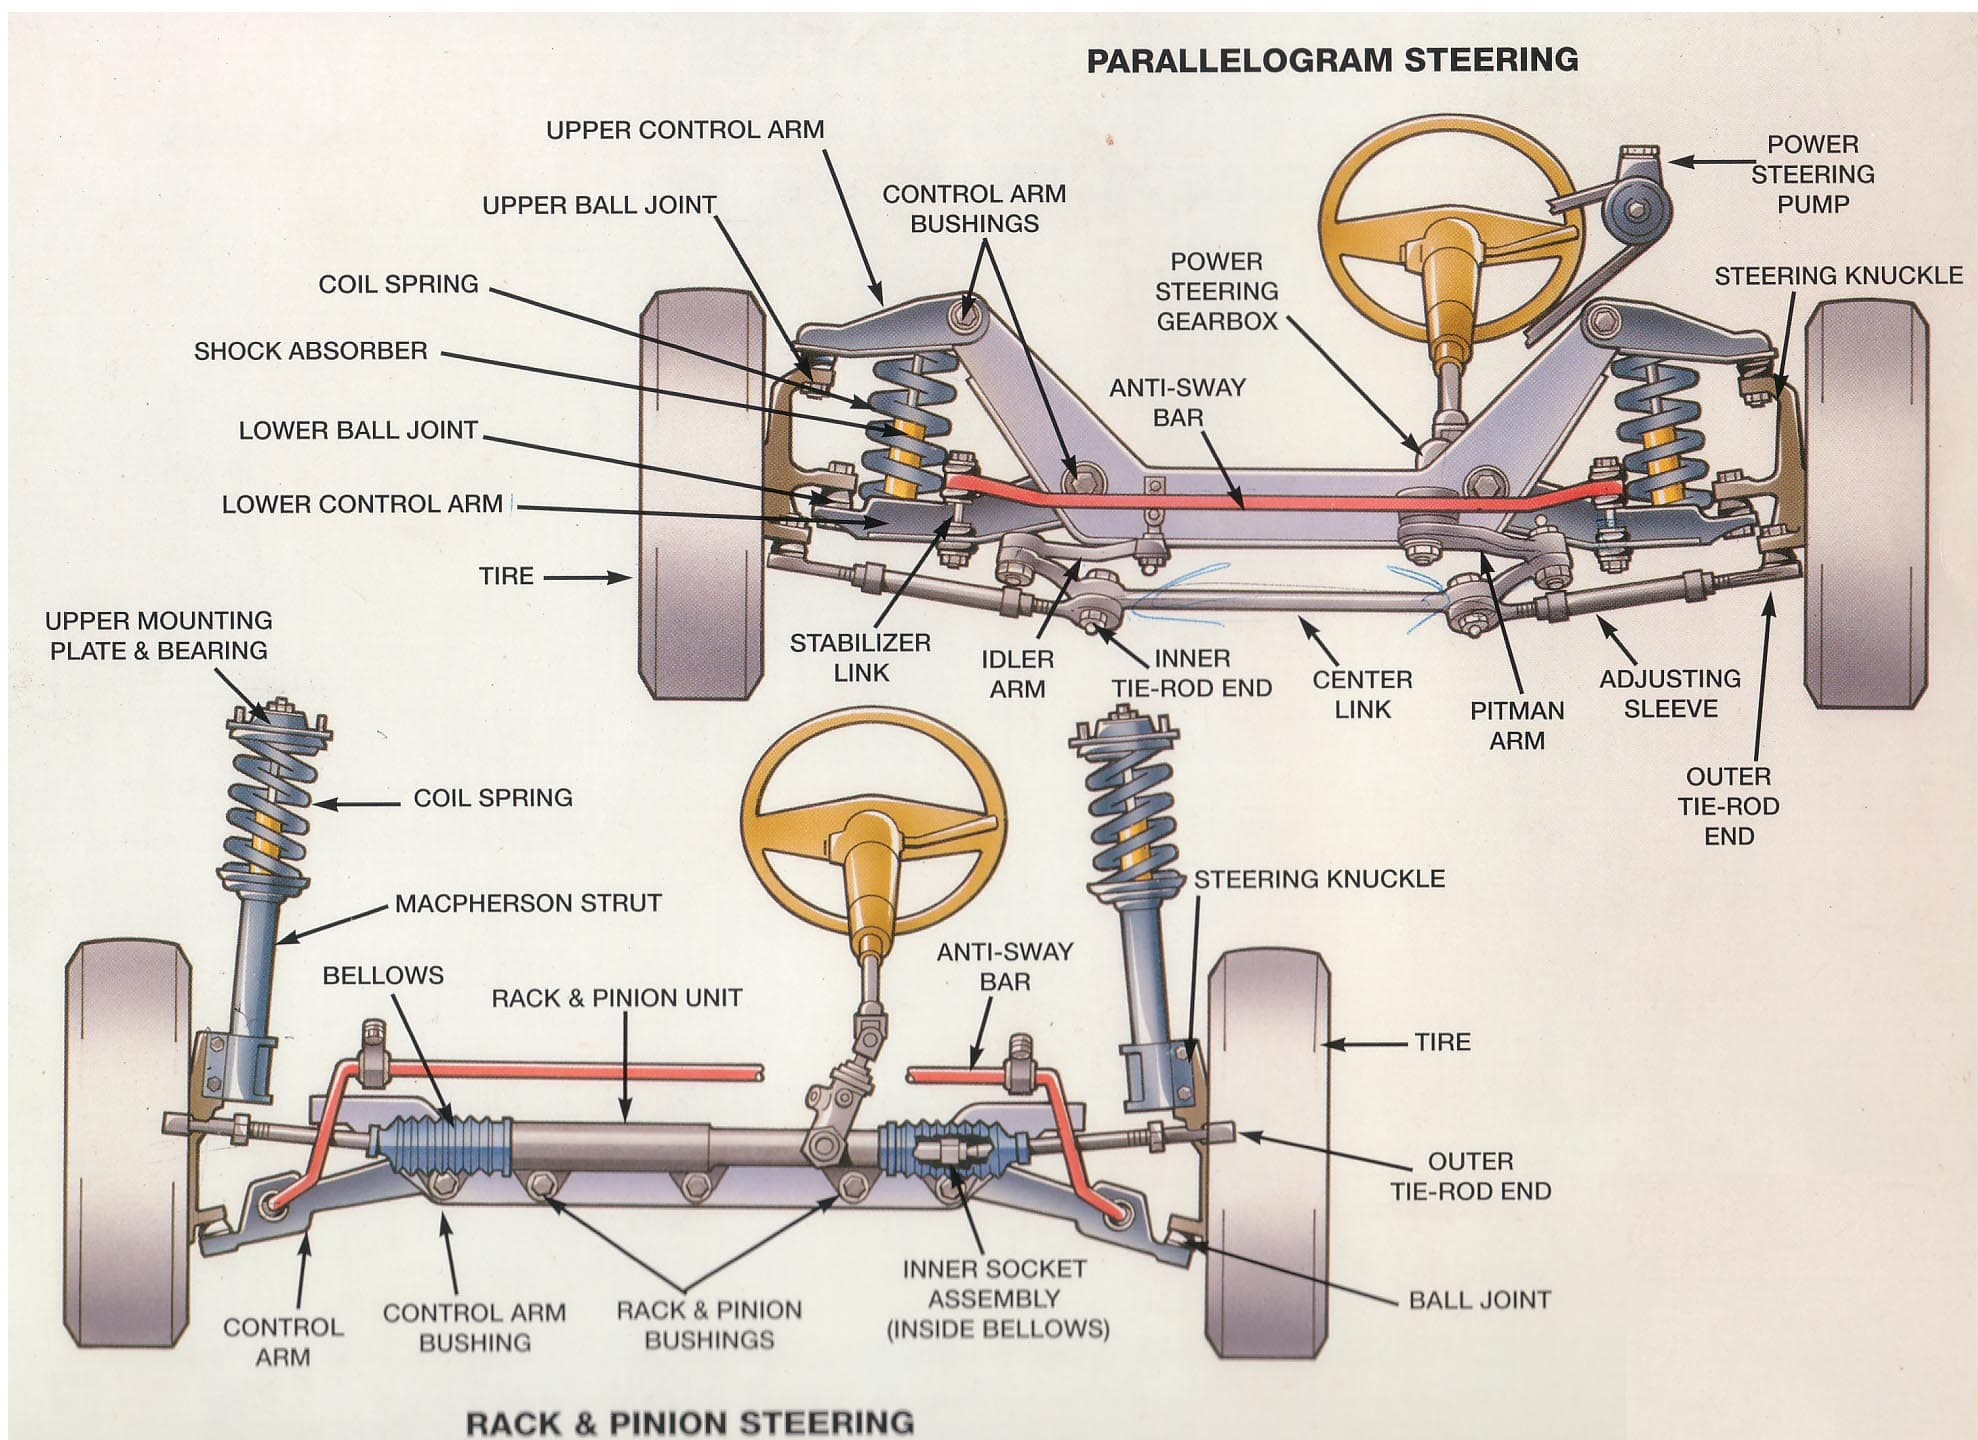 Understand Car Wiring Diagram : Steering diagram